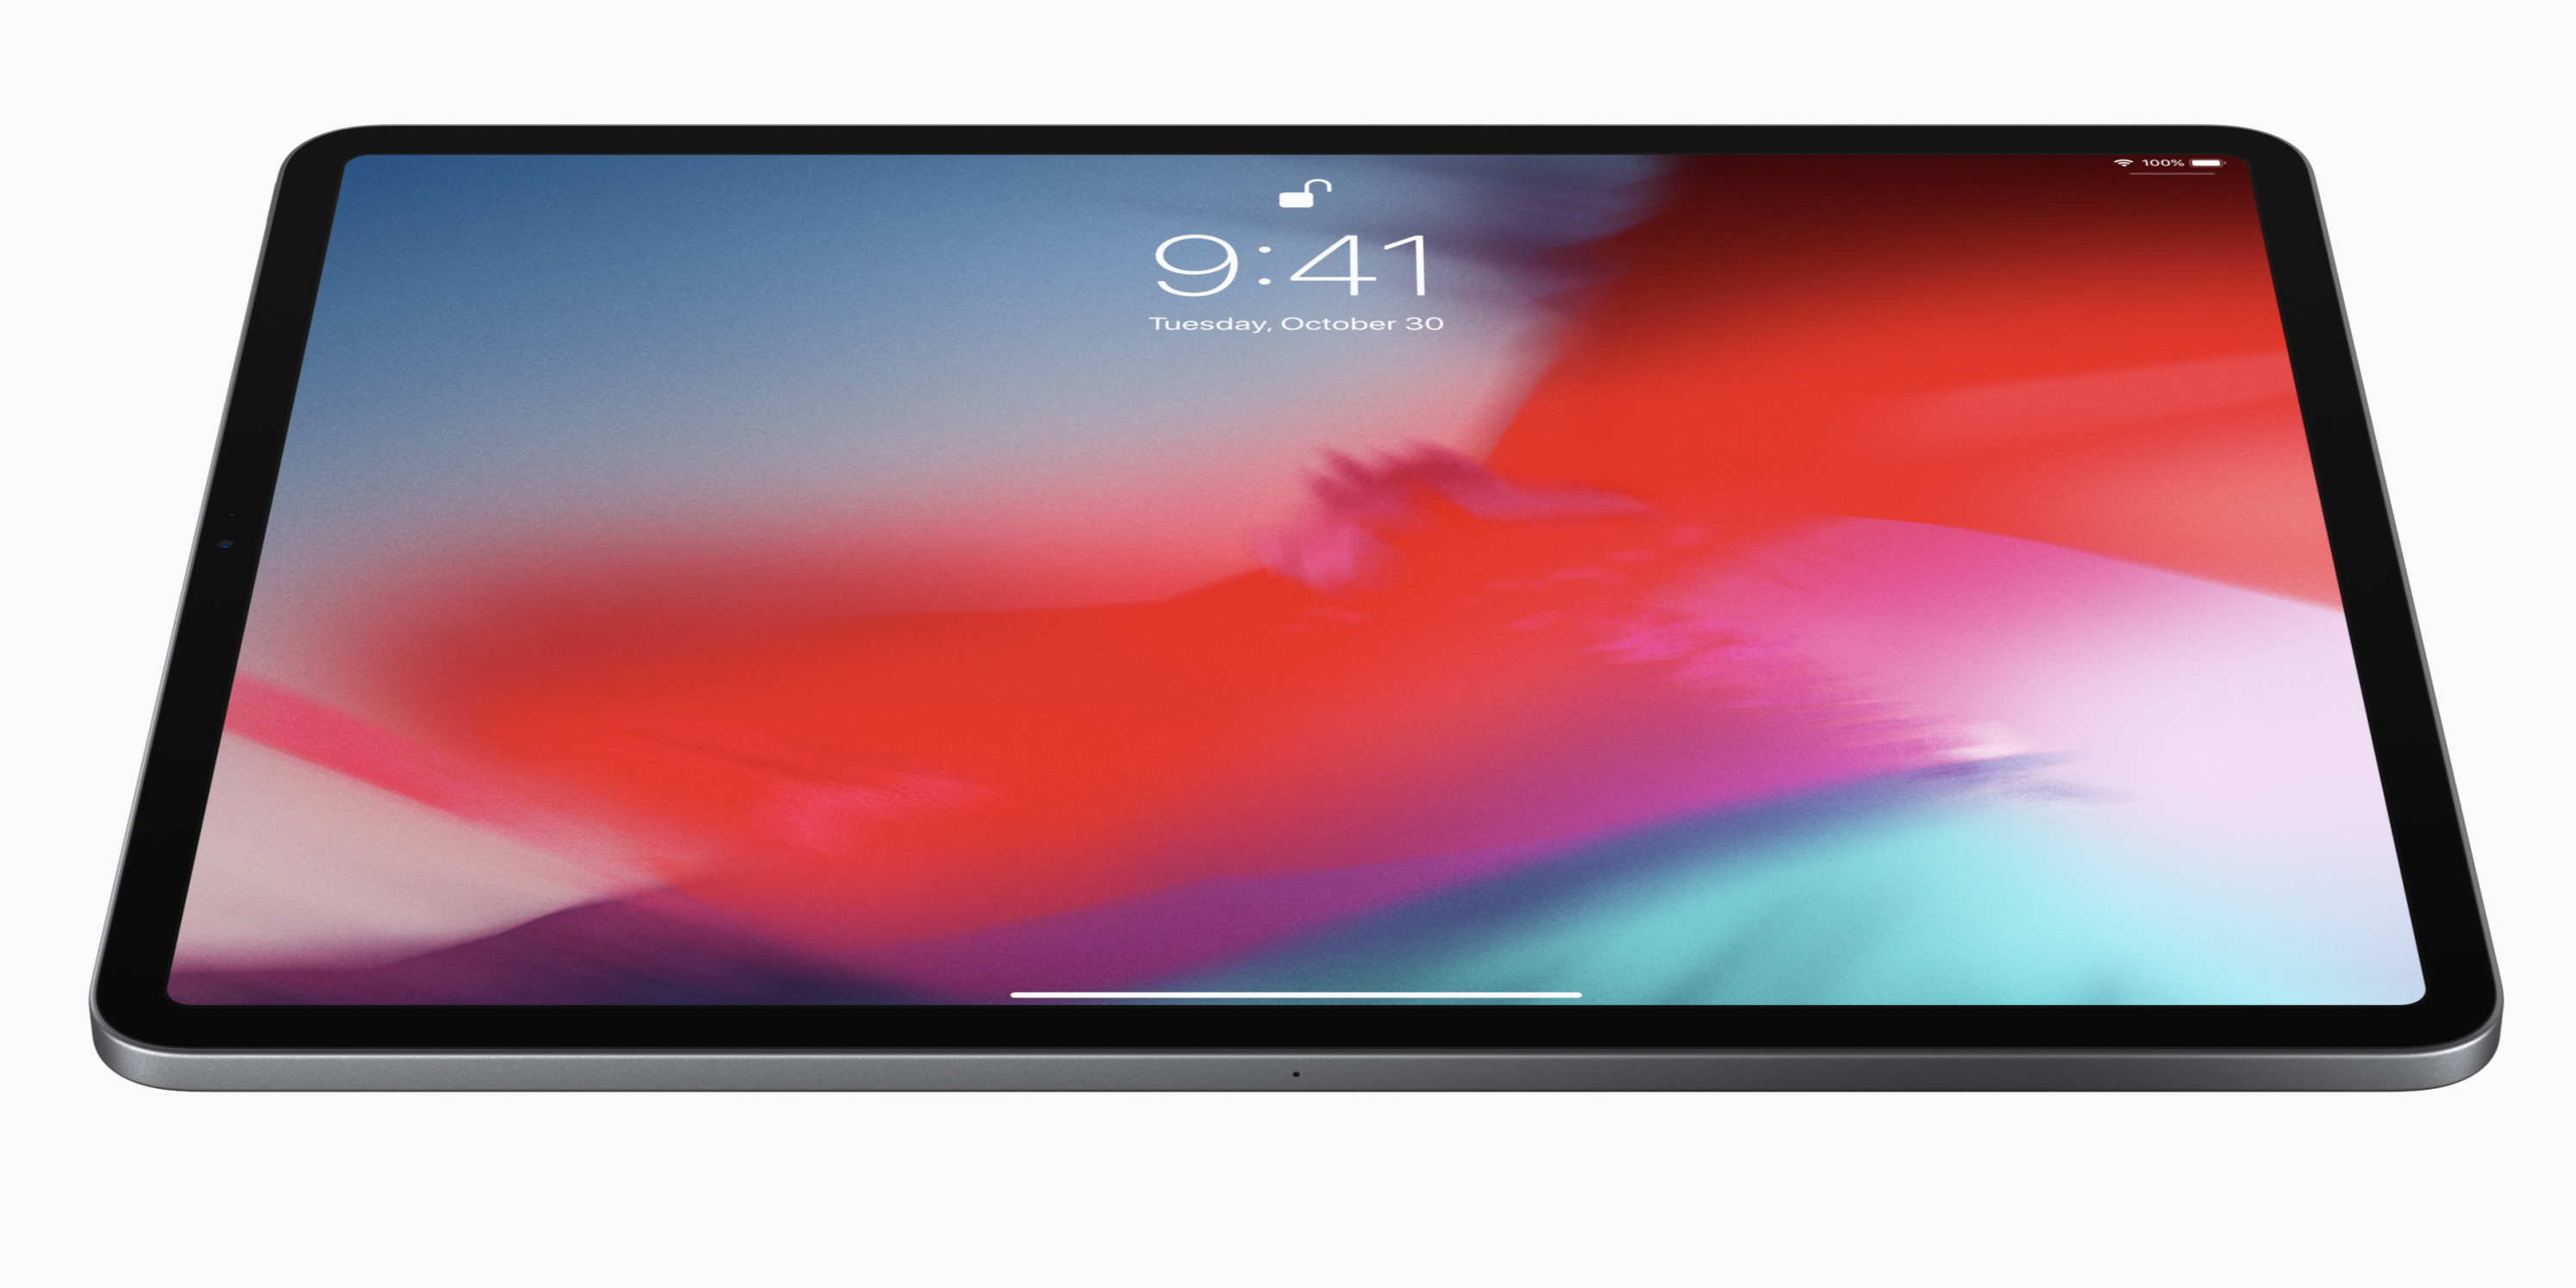 Take Up To 300 Off Apple S 2018 12 9 Inch Ipad Pro Deals From 699 9to5toys